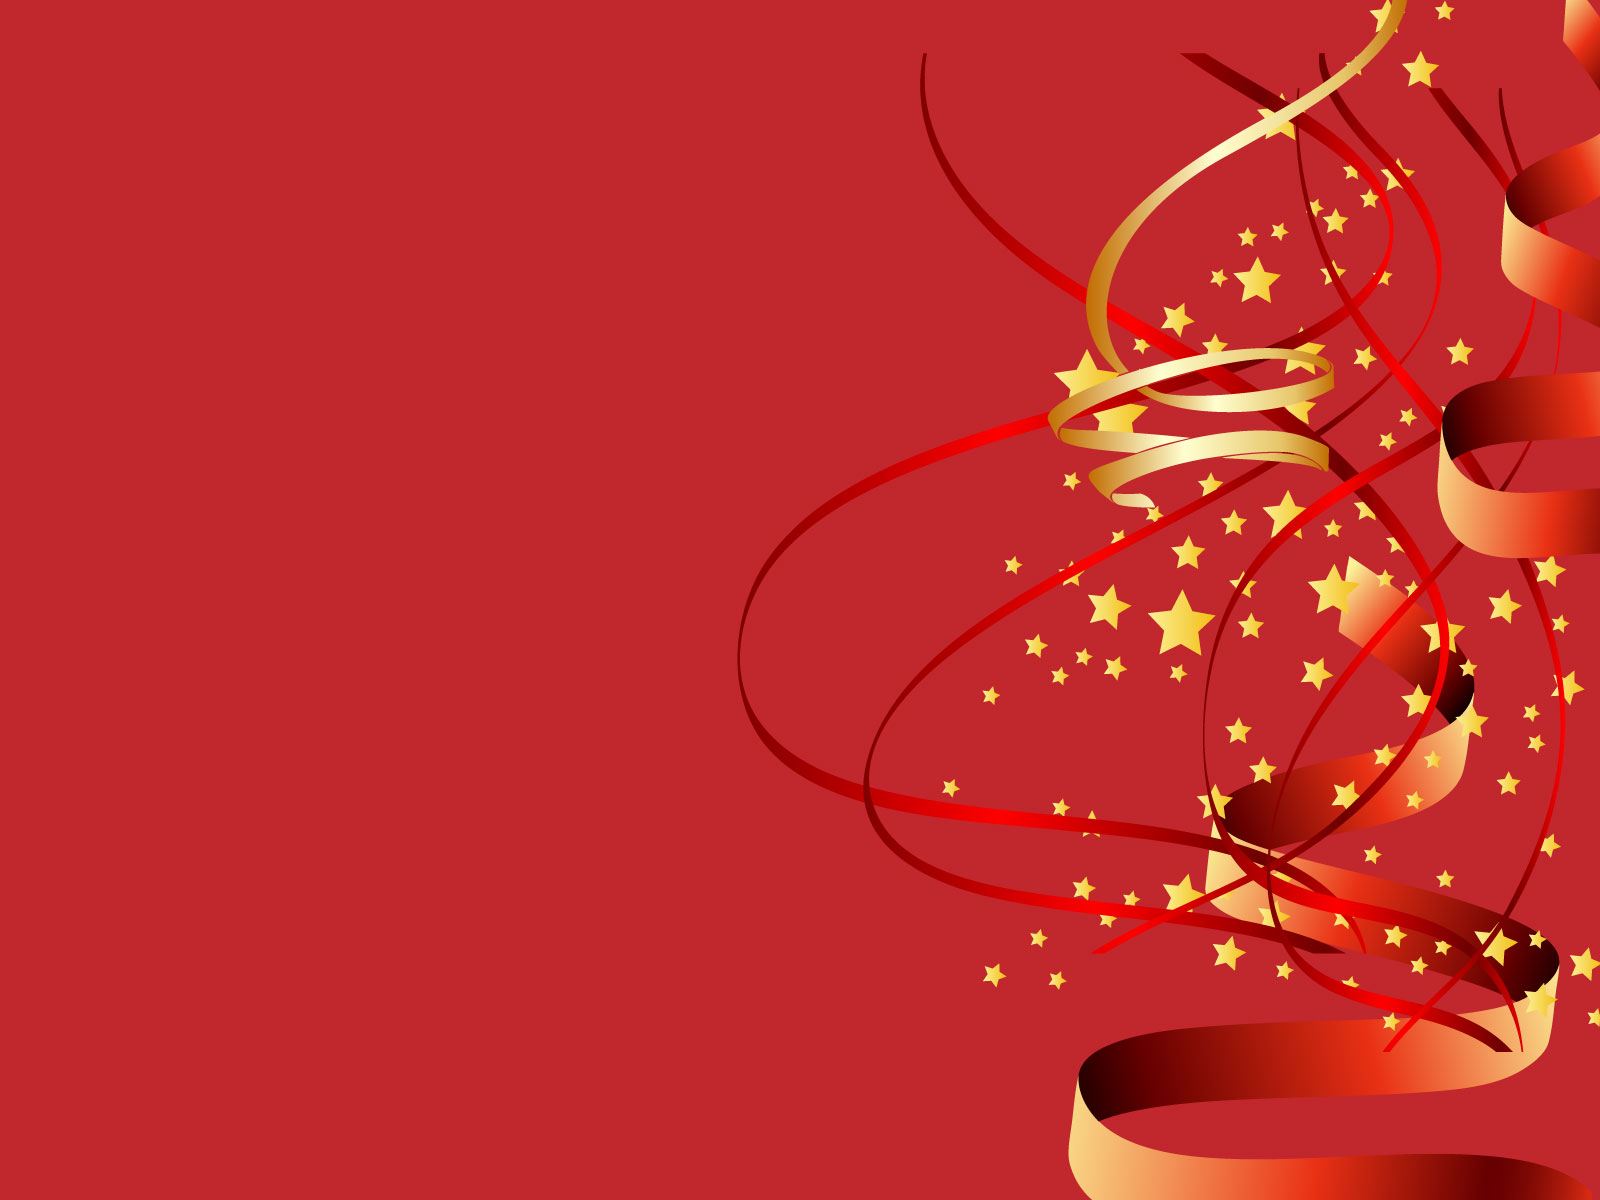 Best New Year Background HD Wallpapers Pulse 1600x1200